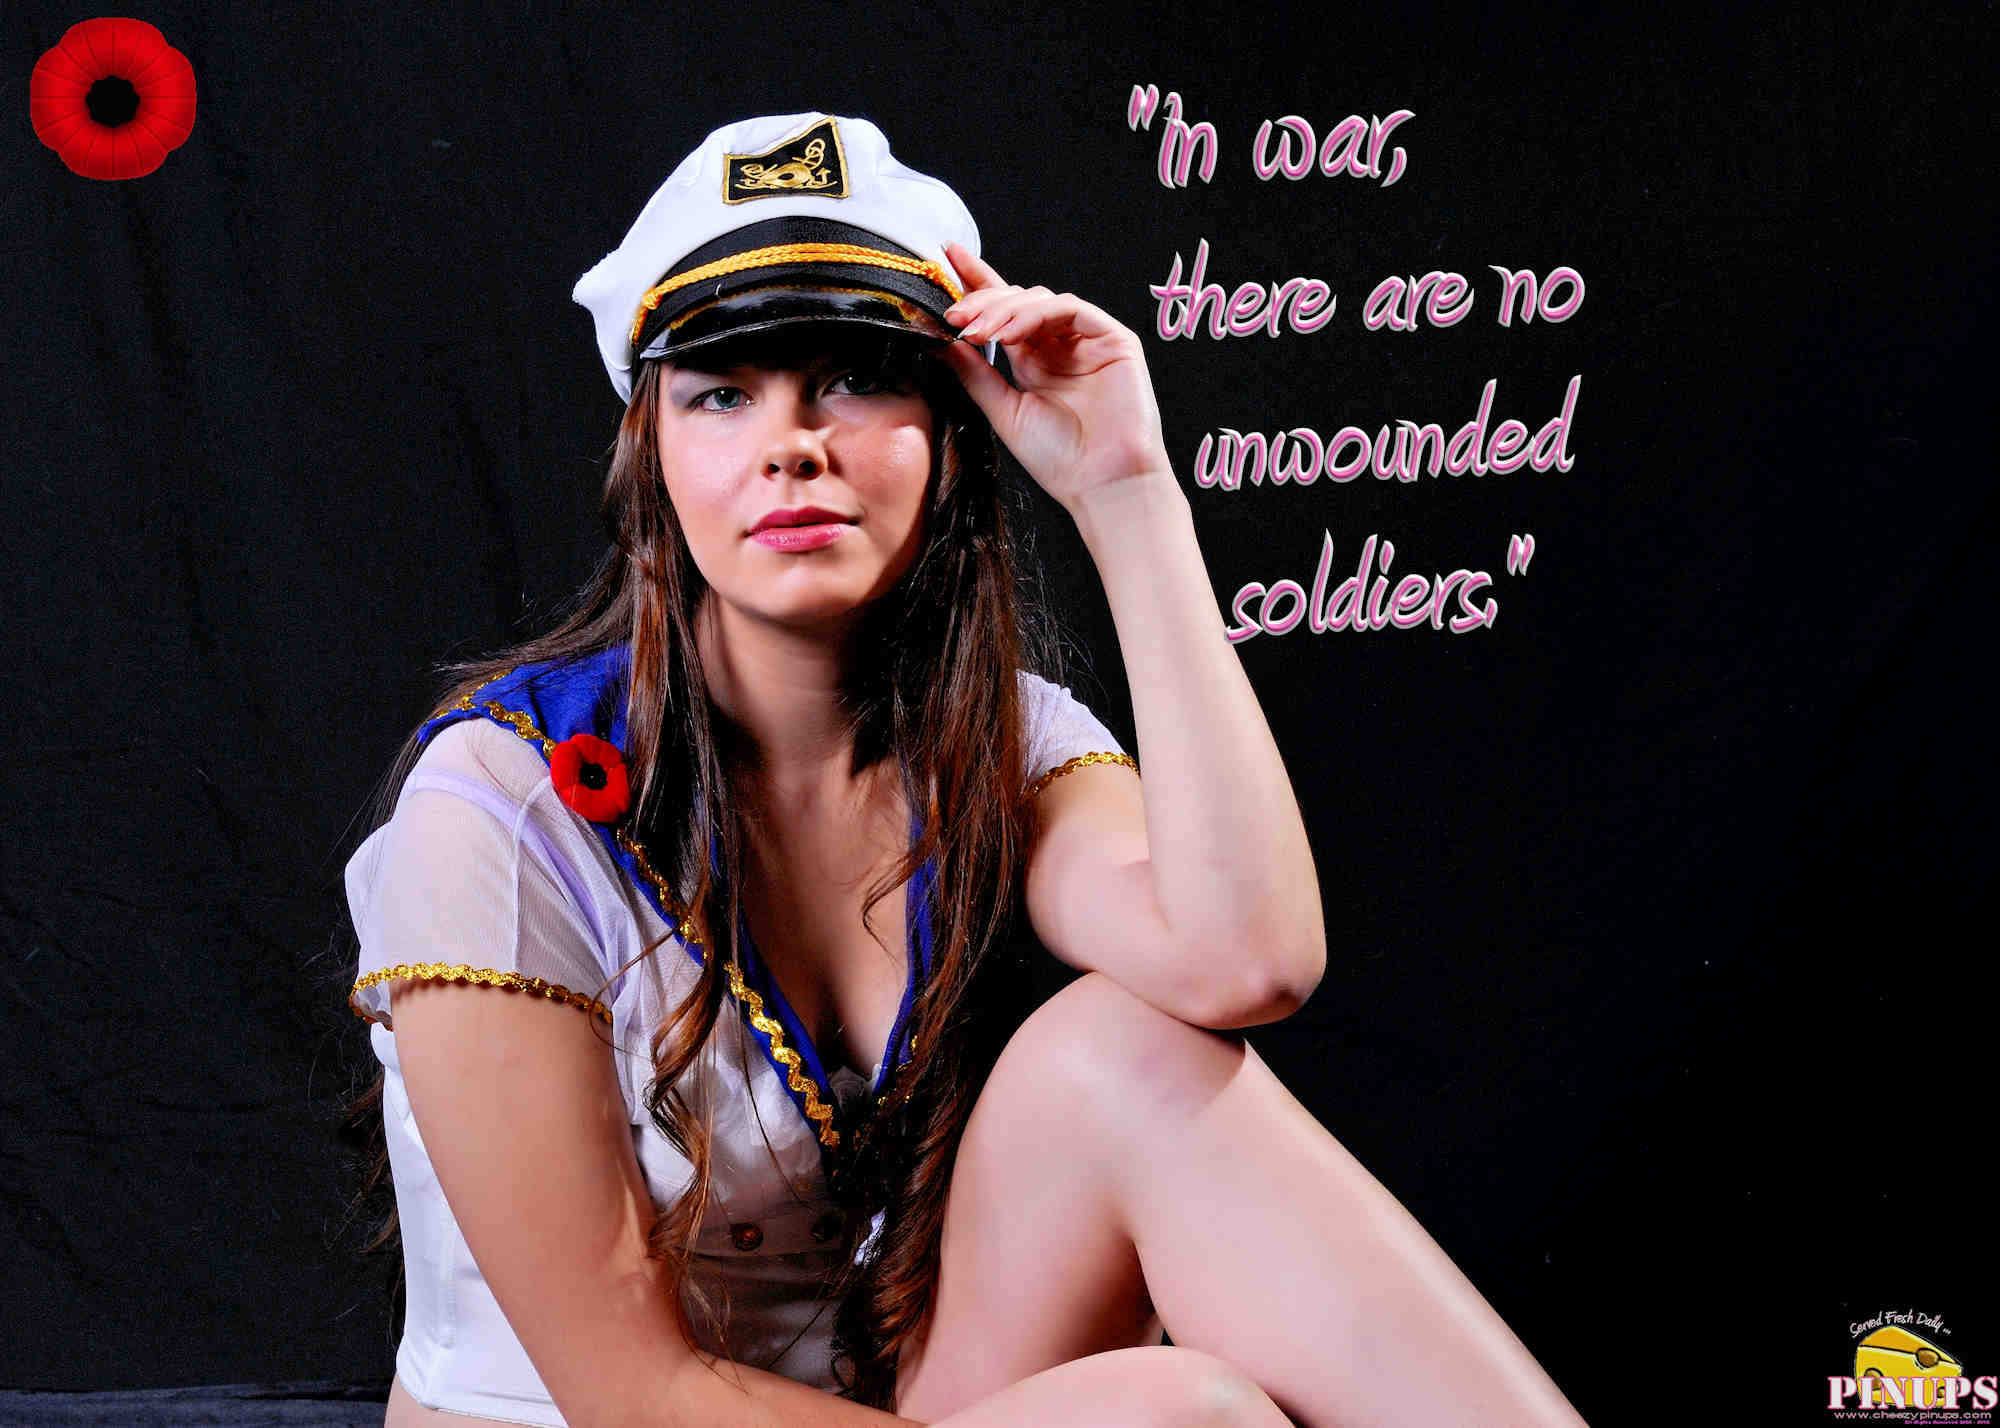 "Cheezy Pinup - November 6, 2018 ""In war, there are no unwounded soldiers."" - Jose Narosky Model: Sammie-Joe"